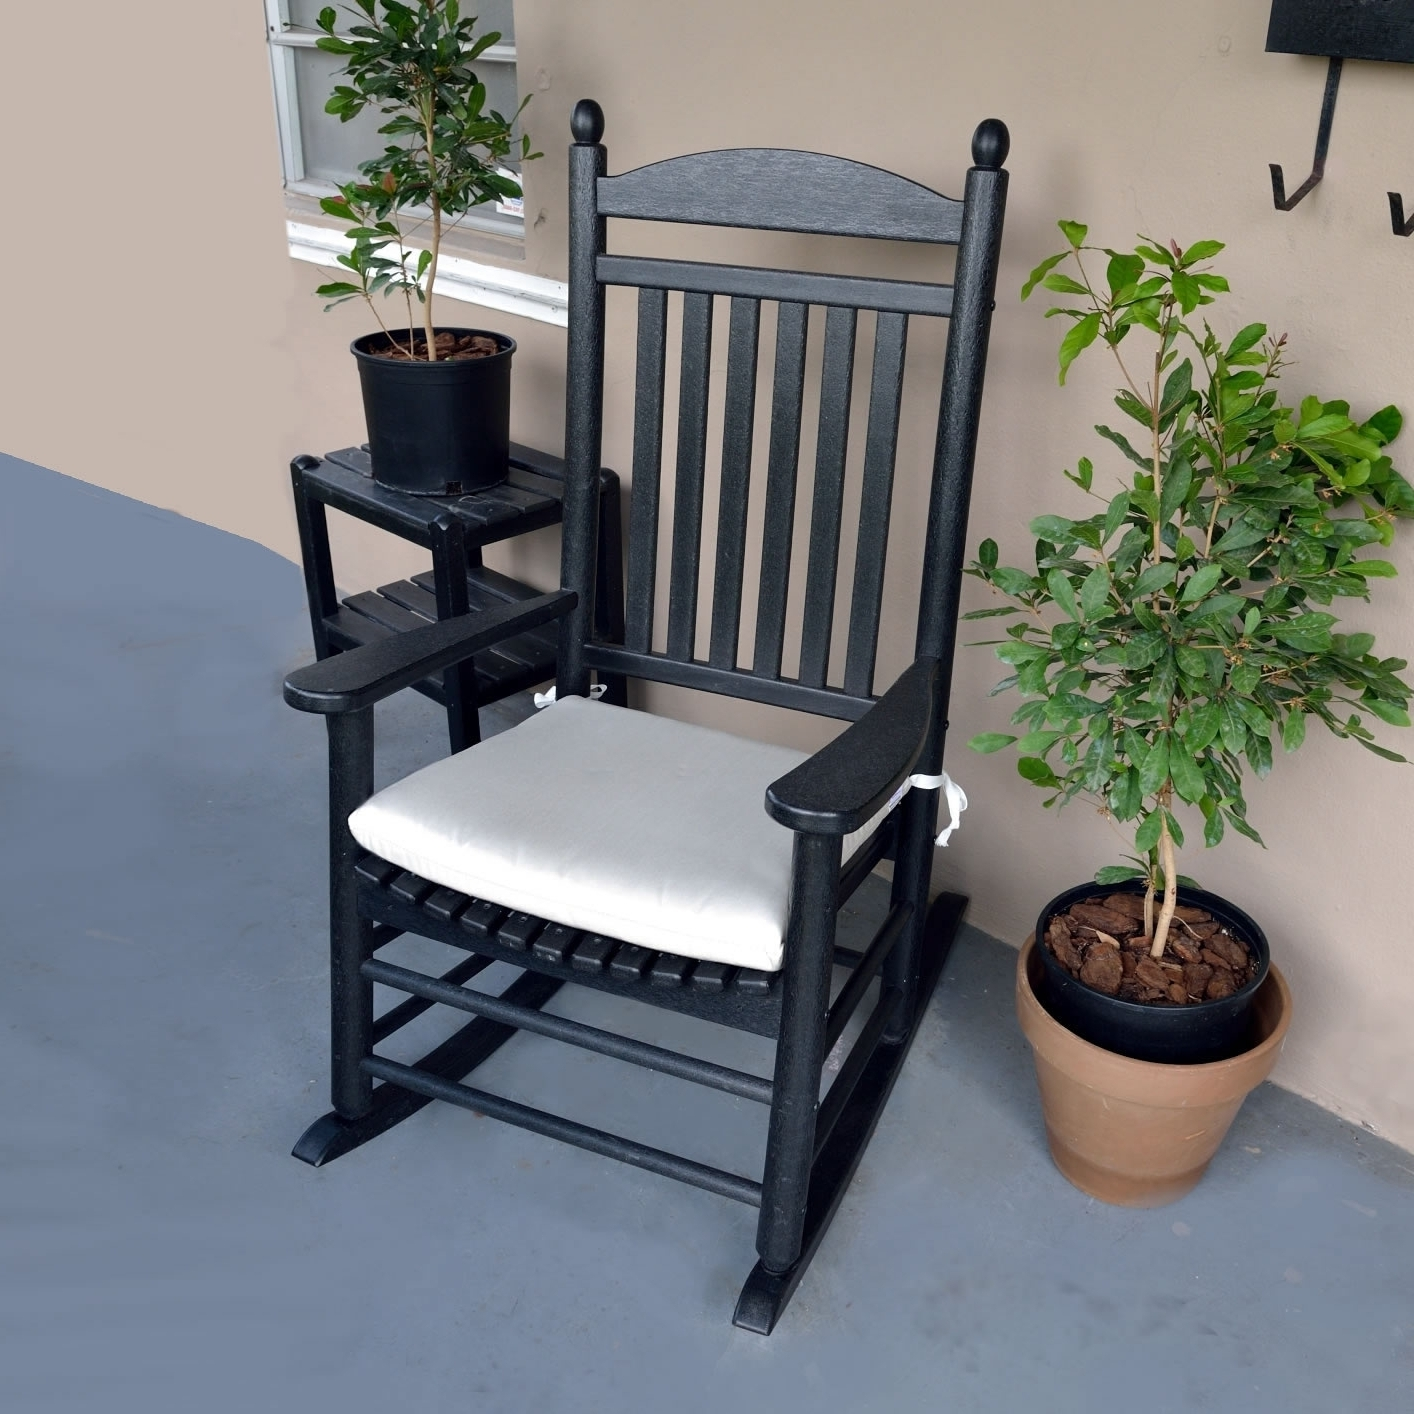 Rocking Chair Cushions For Outdoor Regarding Best And Newest Beautiful Outdoor Rocking Chair Cushions — All Modern Rocking Chairs (View 2 of 15)